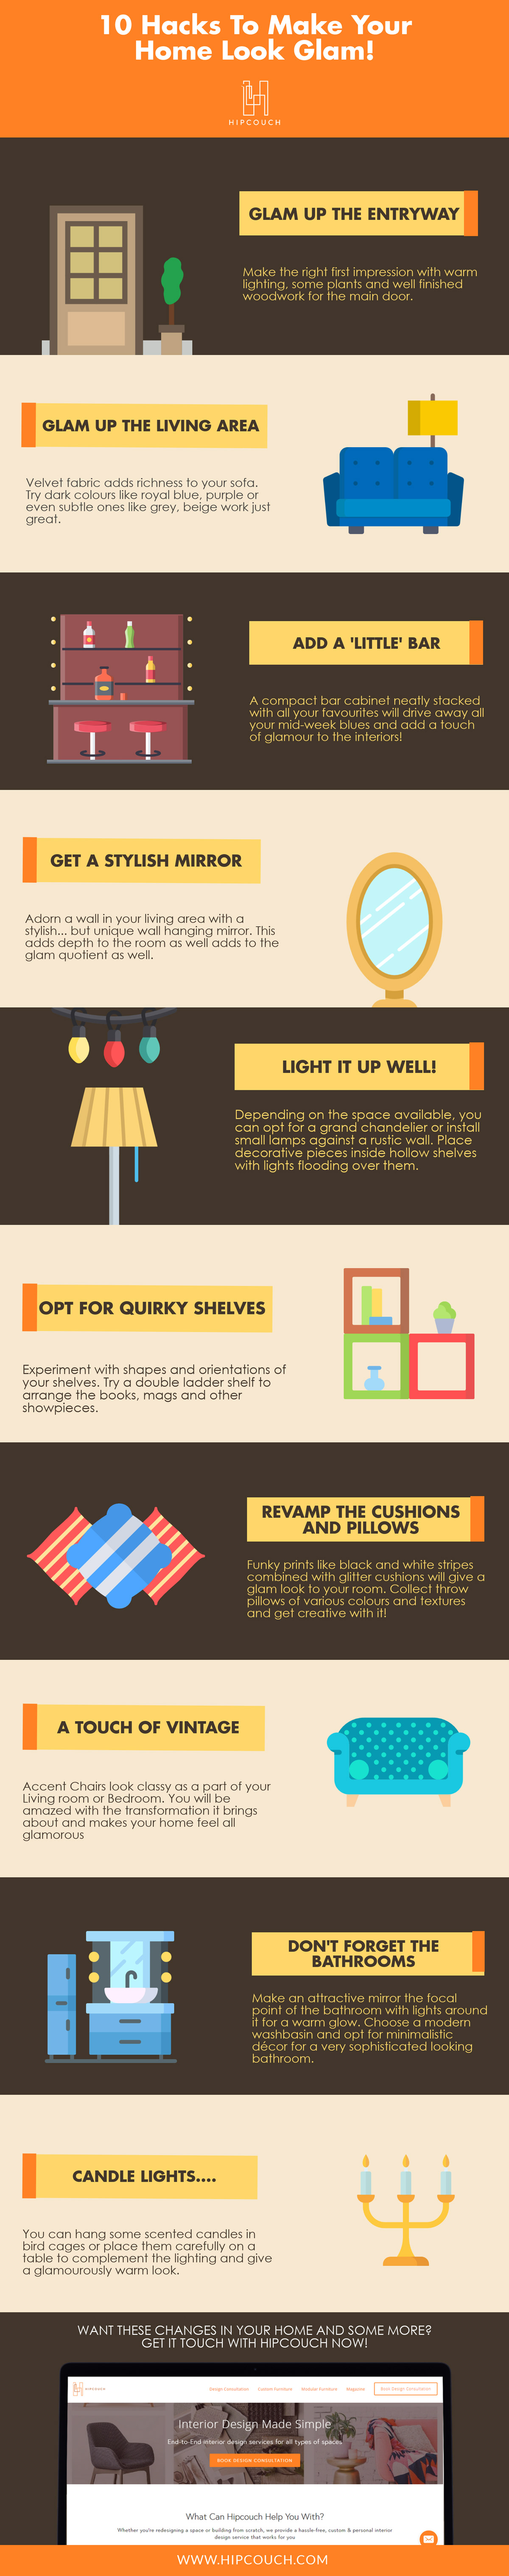 10-Hacks-To-Make-Your-Interiors-Look-Glam-2.jpg